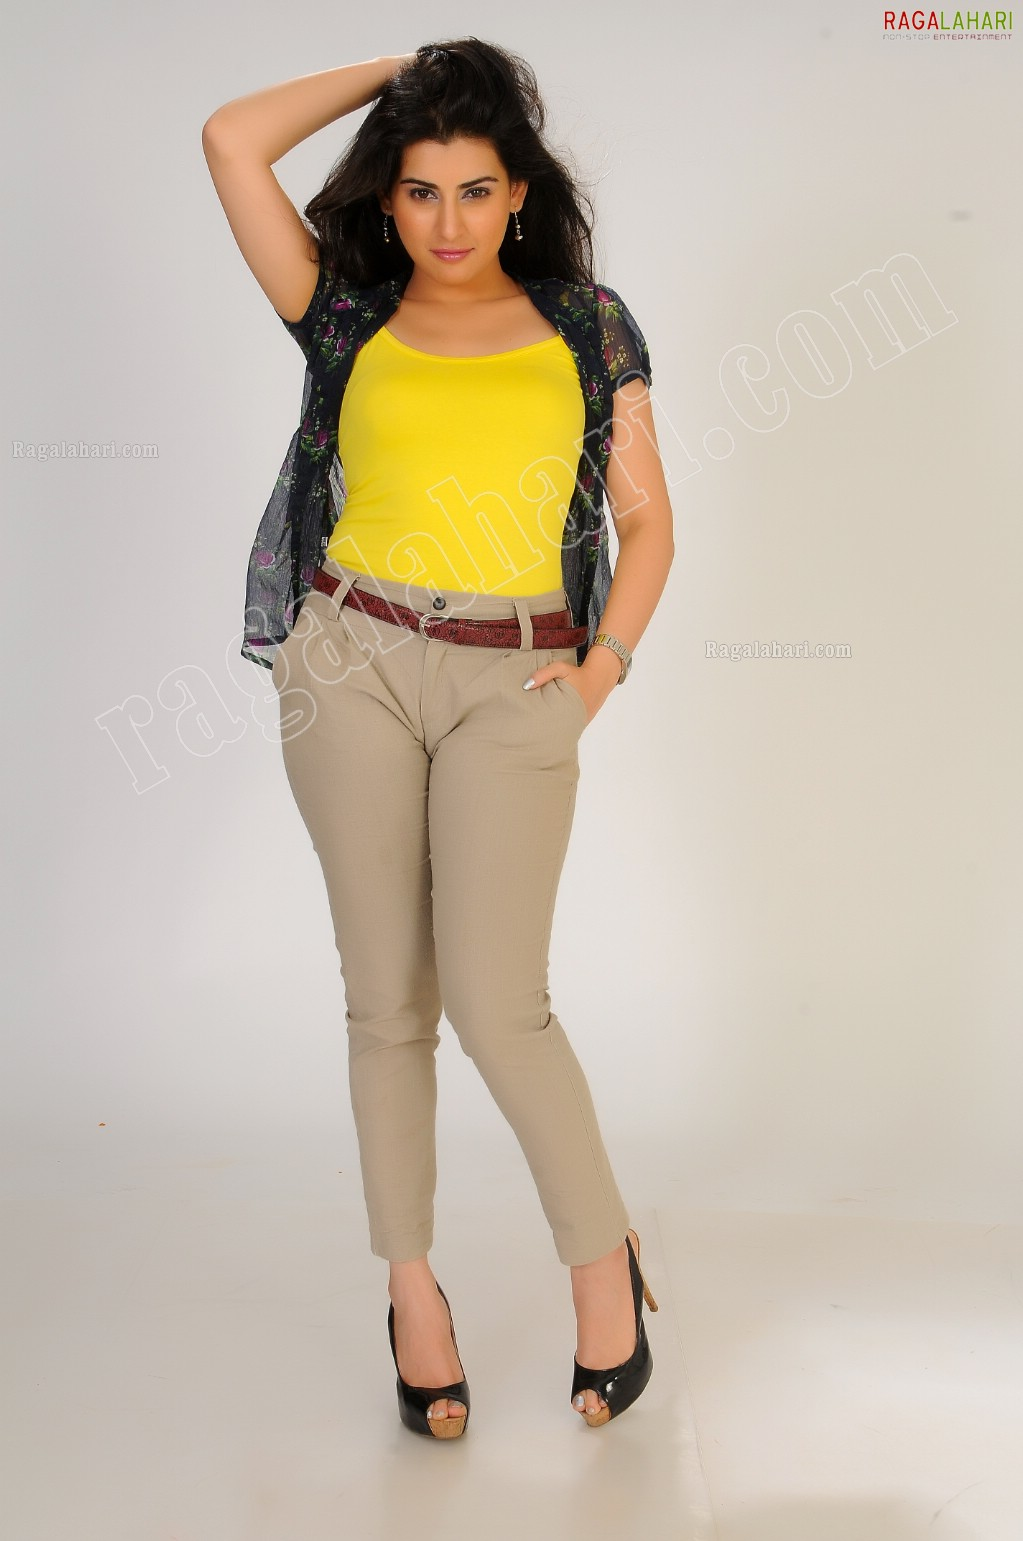 Archana Veda1 - Archana Veda in Yellow Top